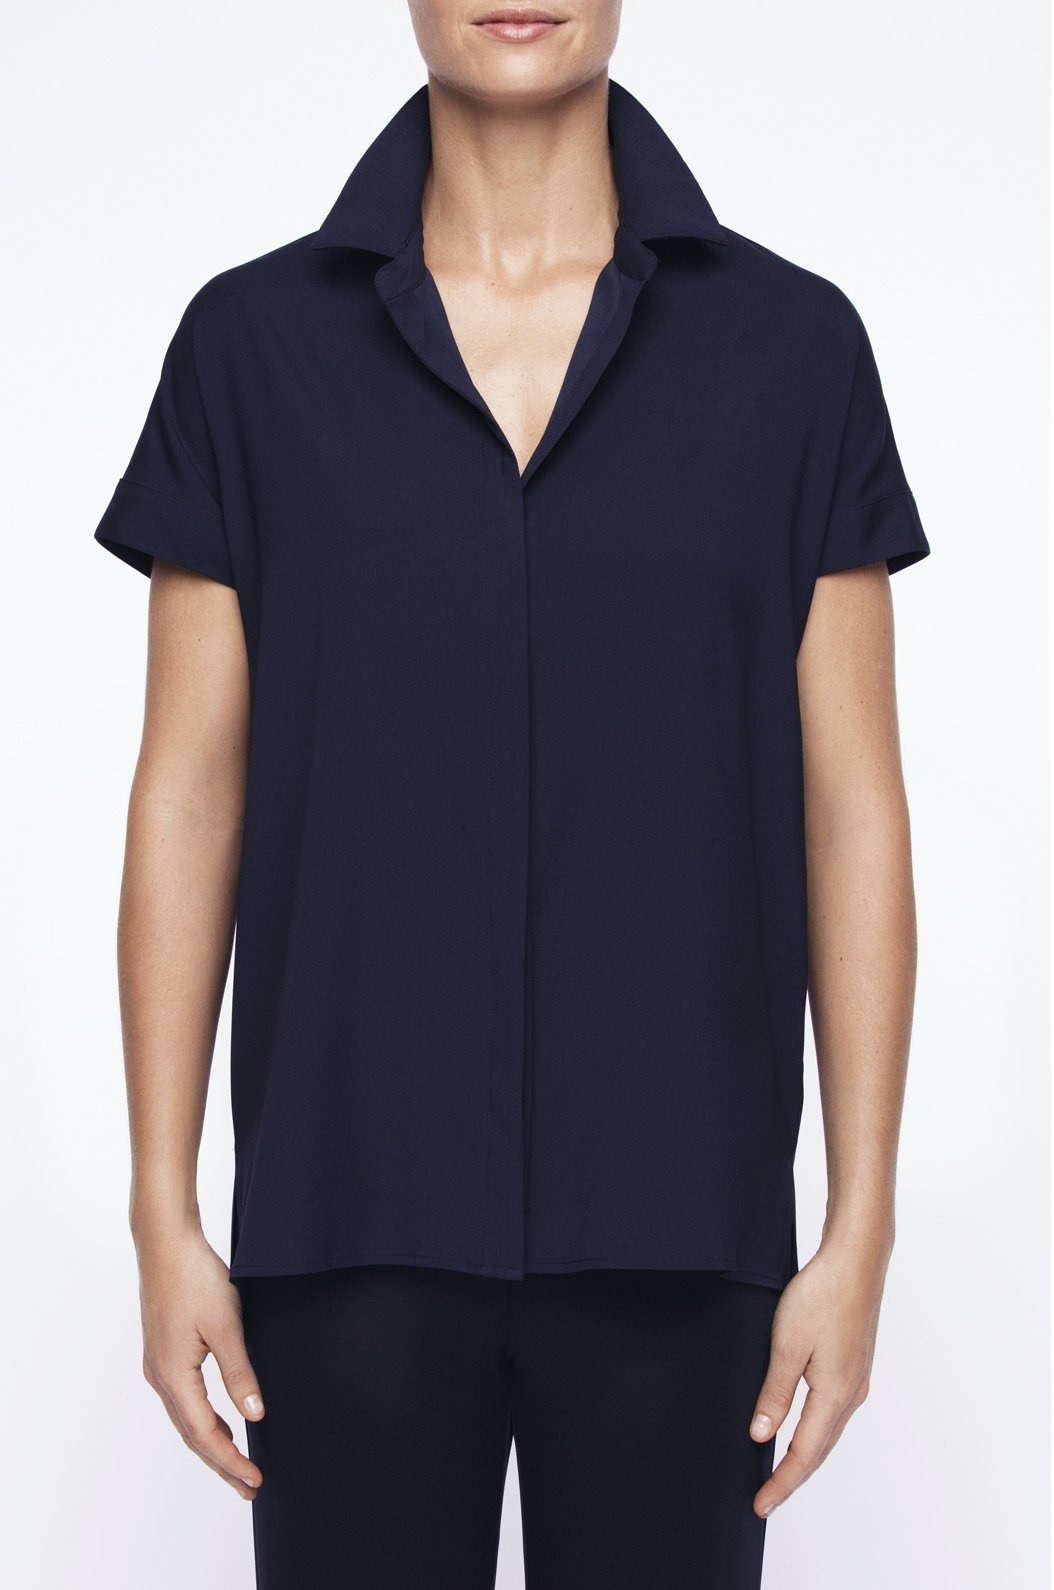 Luxury loungewear - SILK TWILL SHORT SLEEVE BUTTON DOWN | ROYL